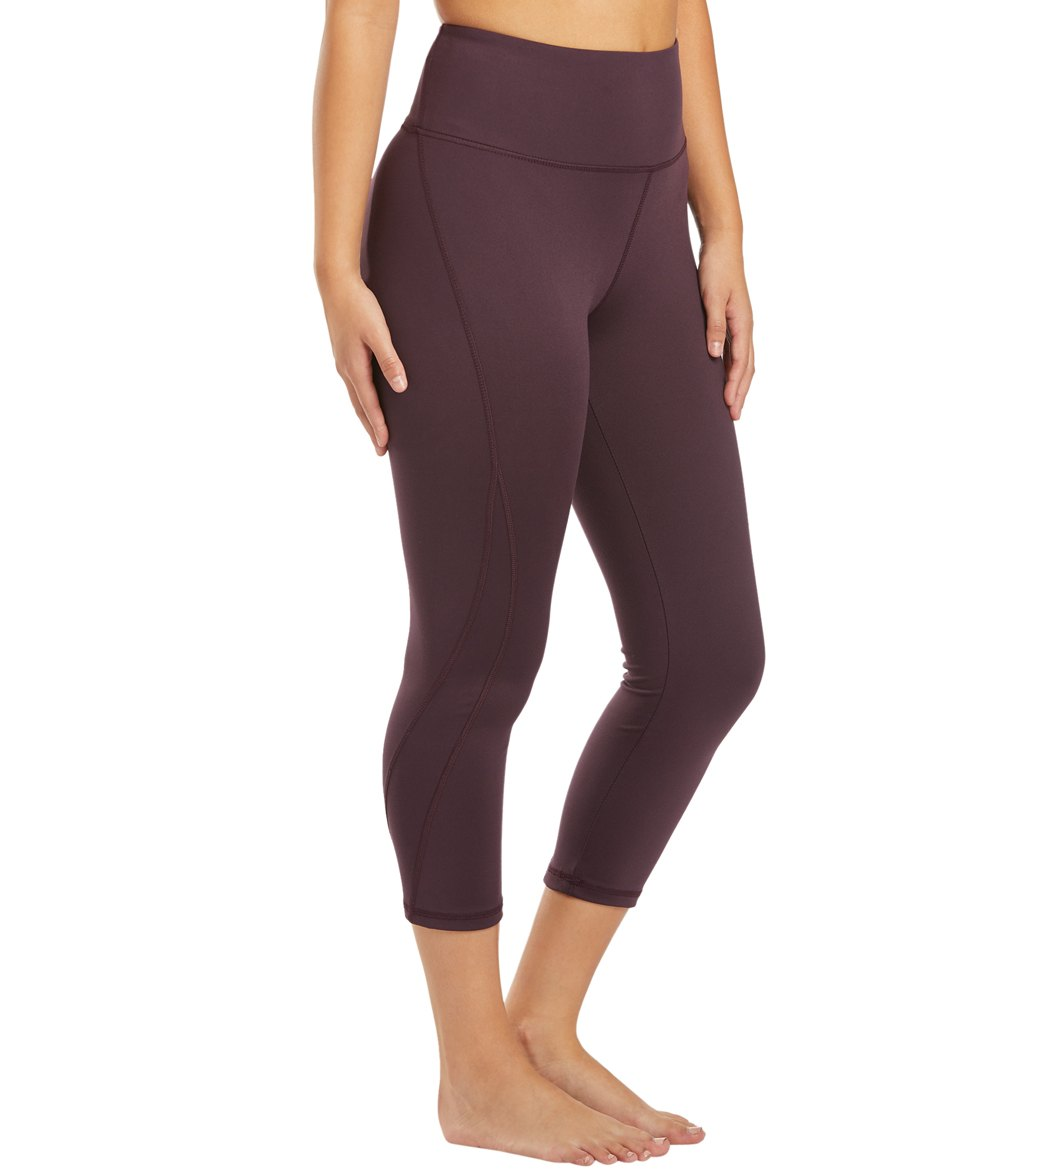 Balance Collection Briar High Waisted Yoga Capri Pants - Wild Plum Cotton